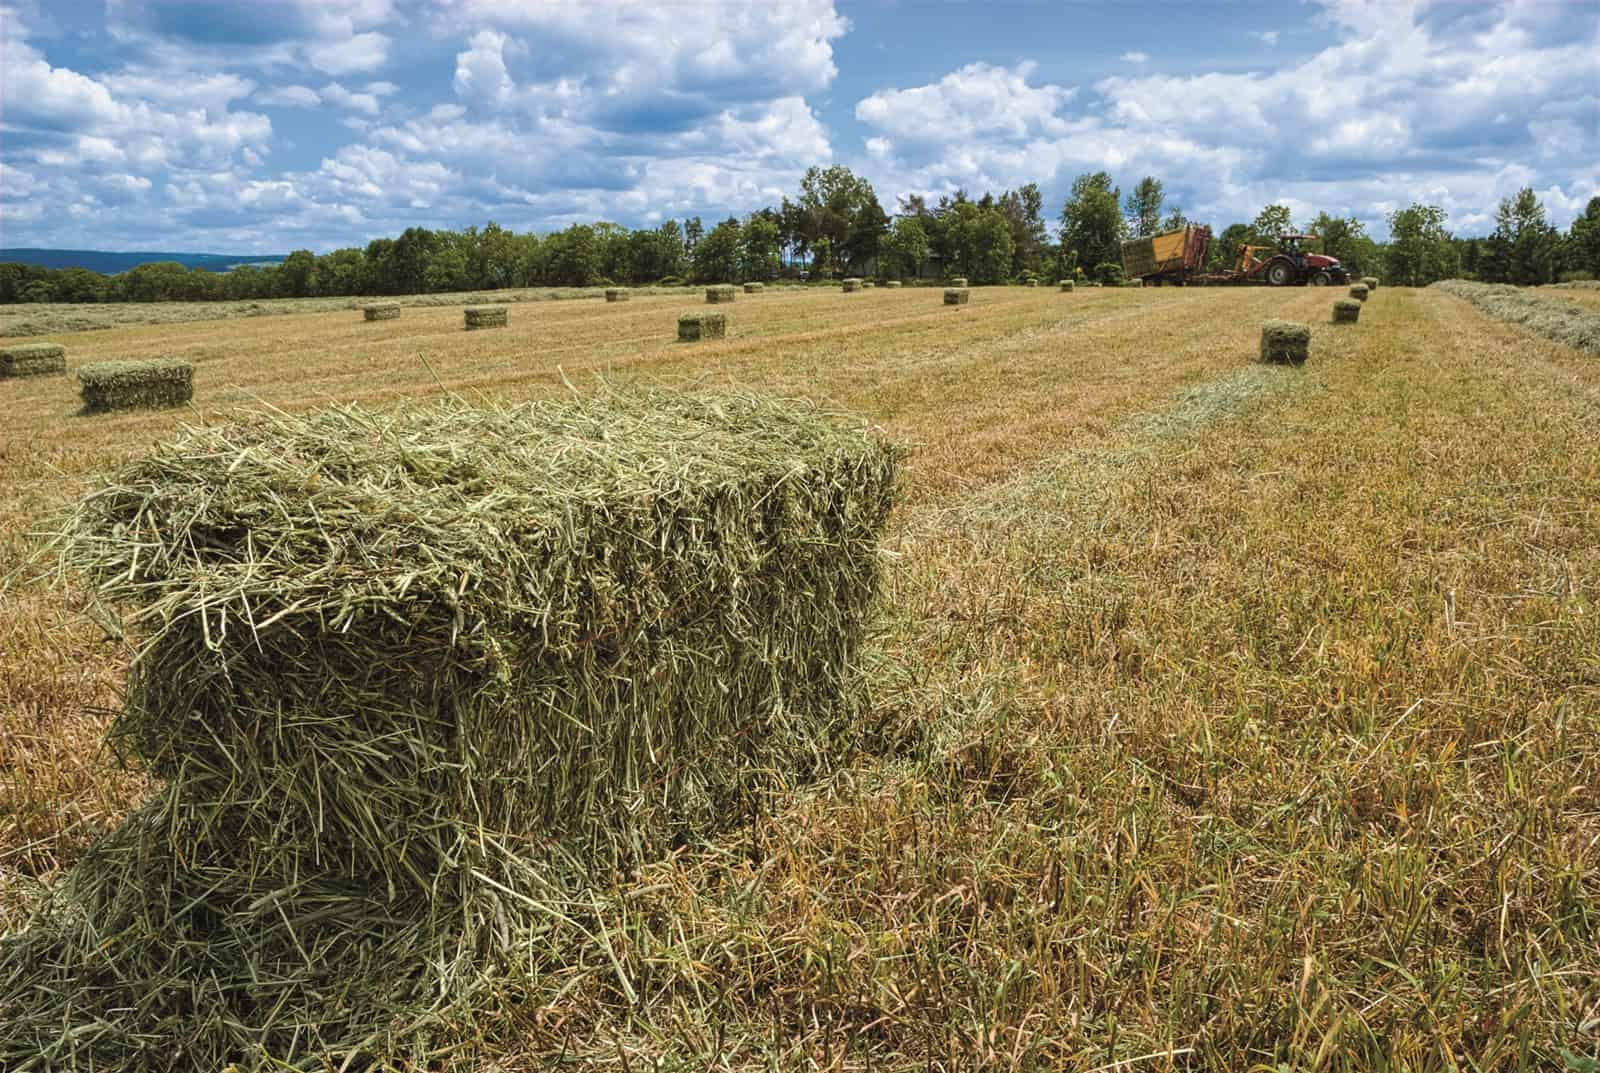 hay-bales-in-field-after-bailing